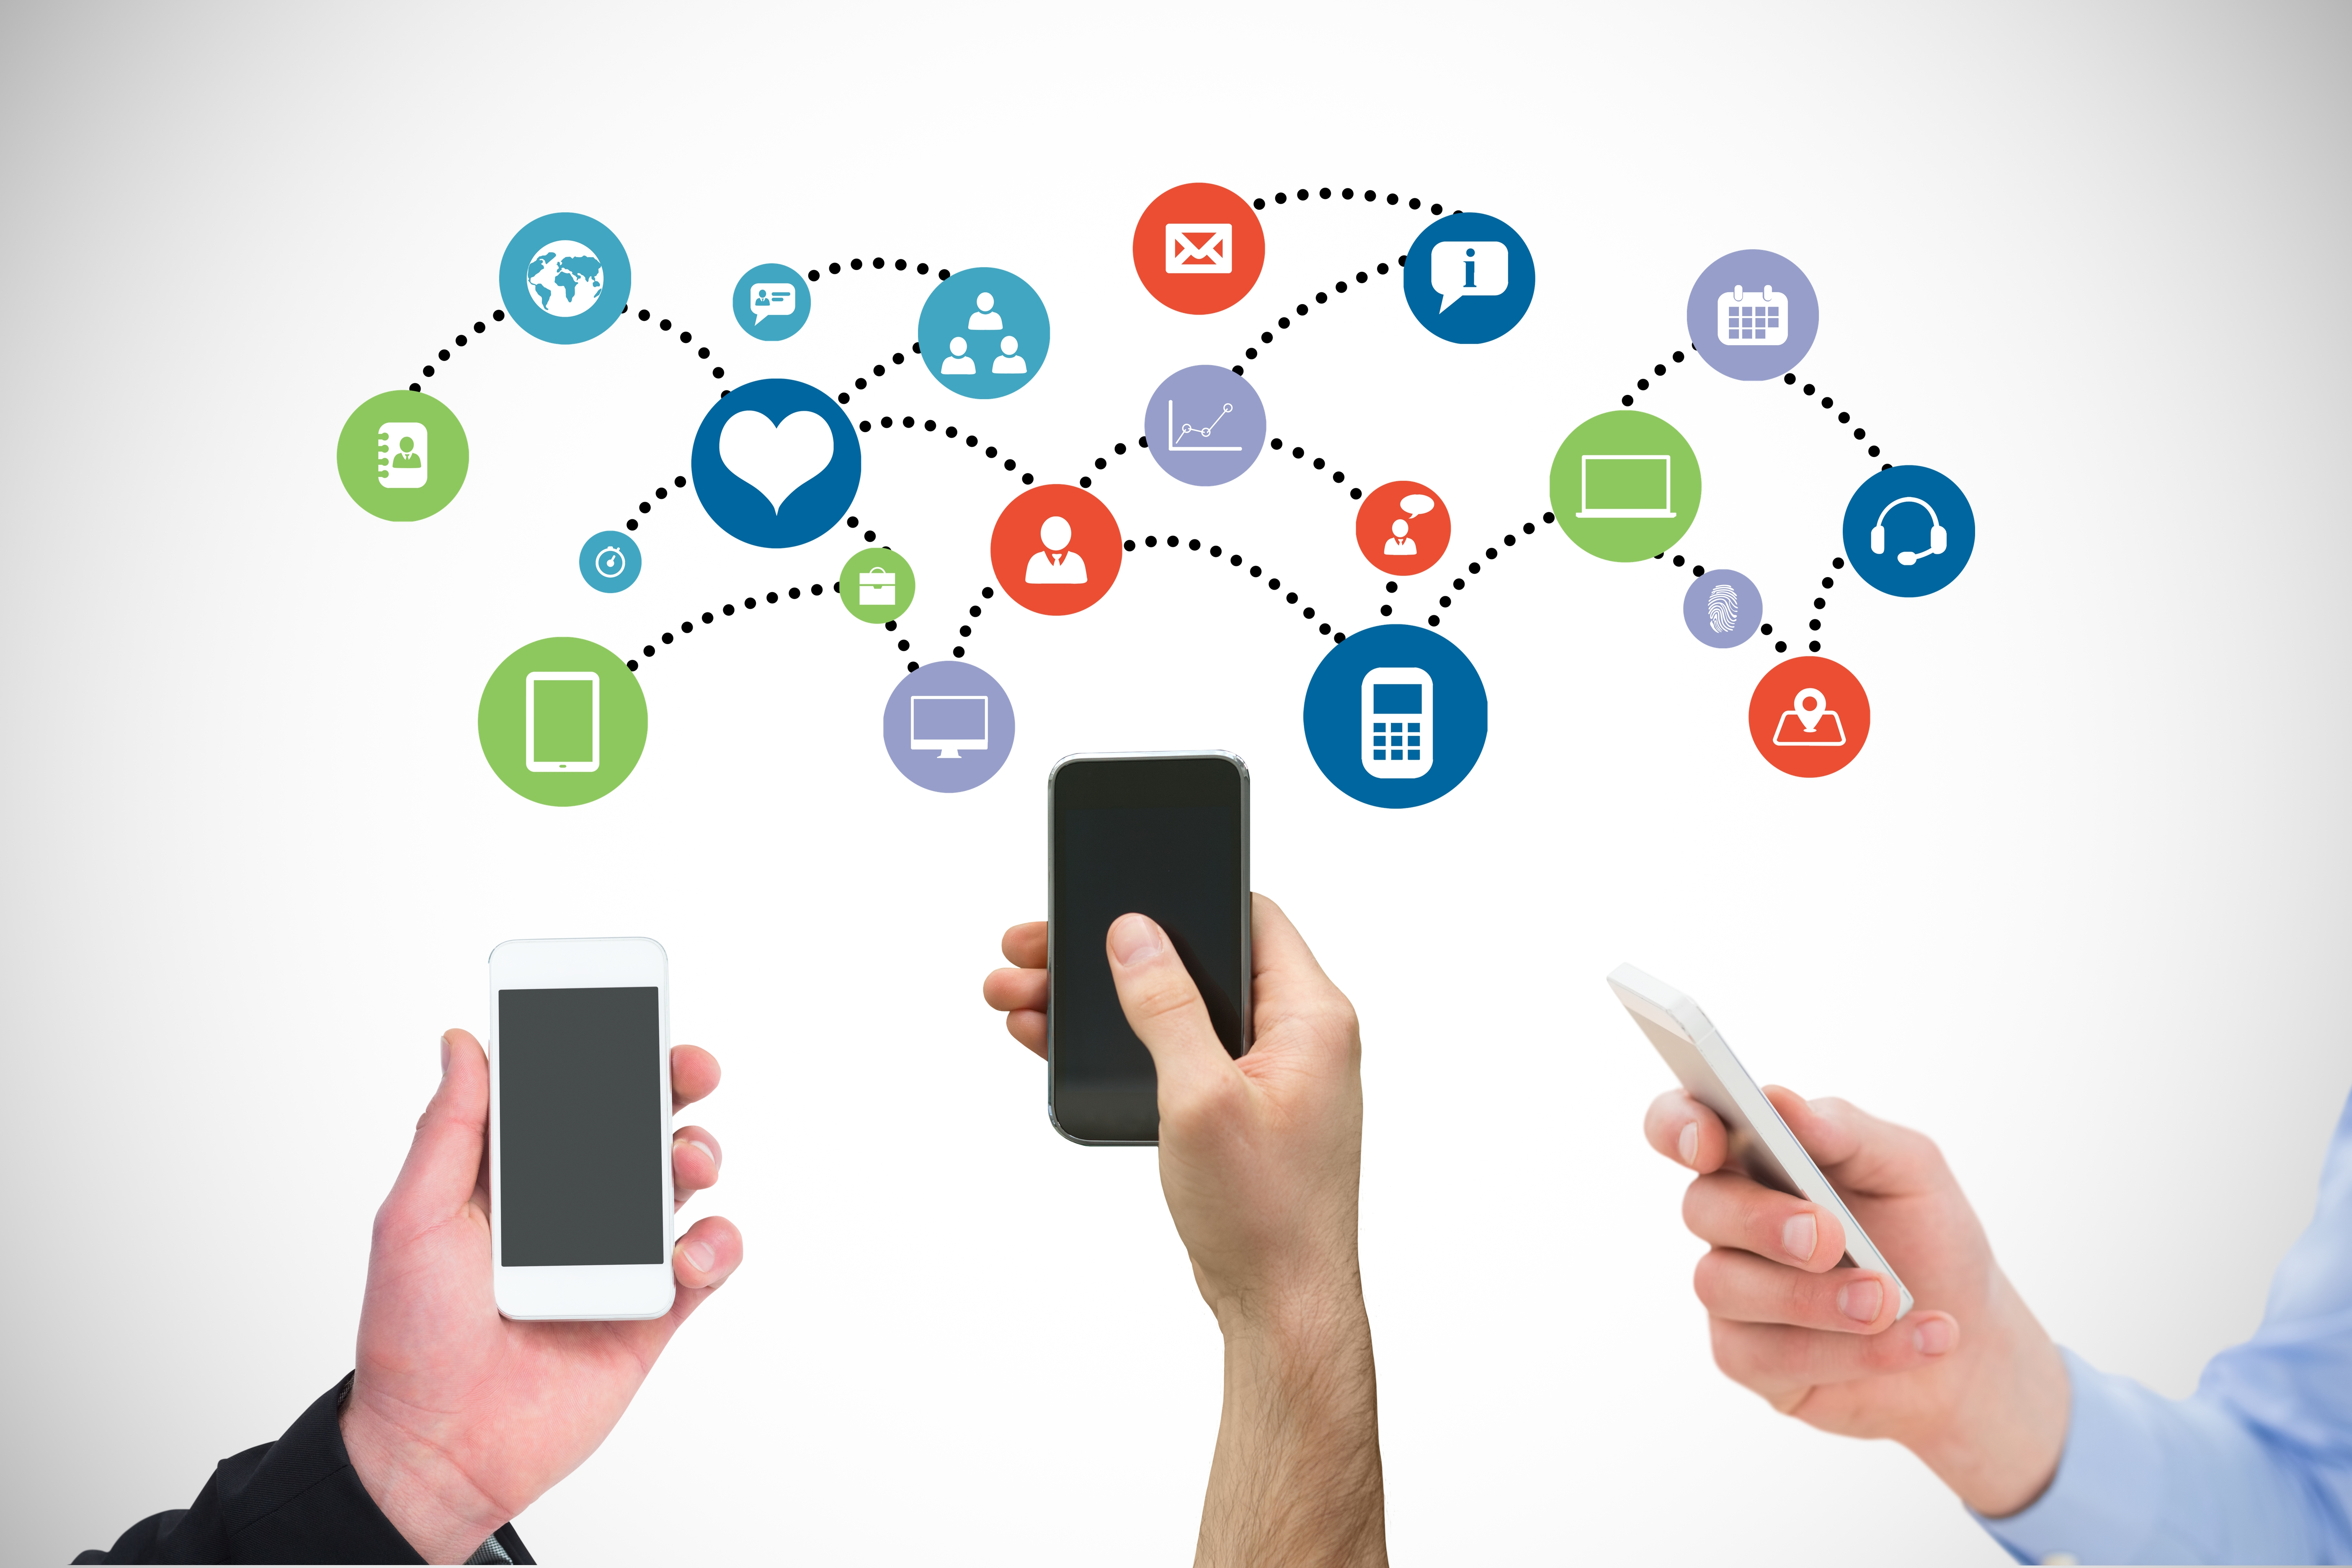 smartphones-sharing-information-with-their-applications